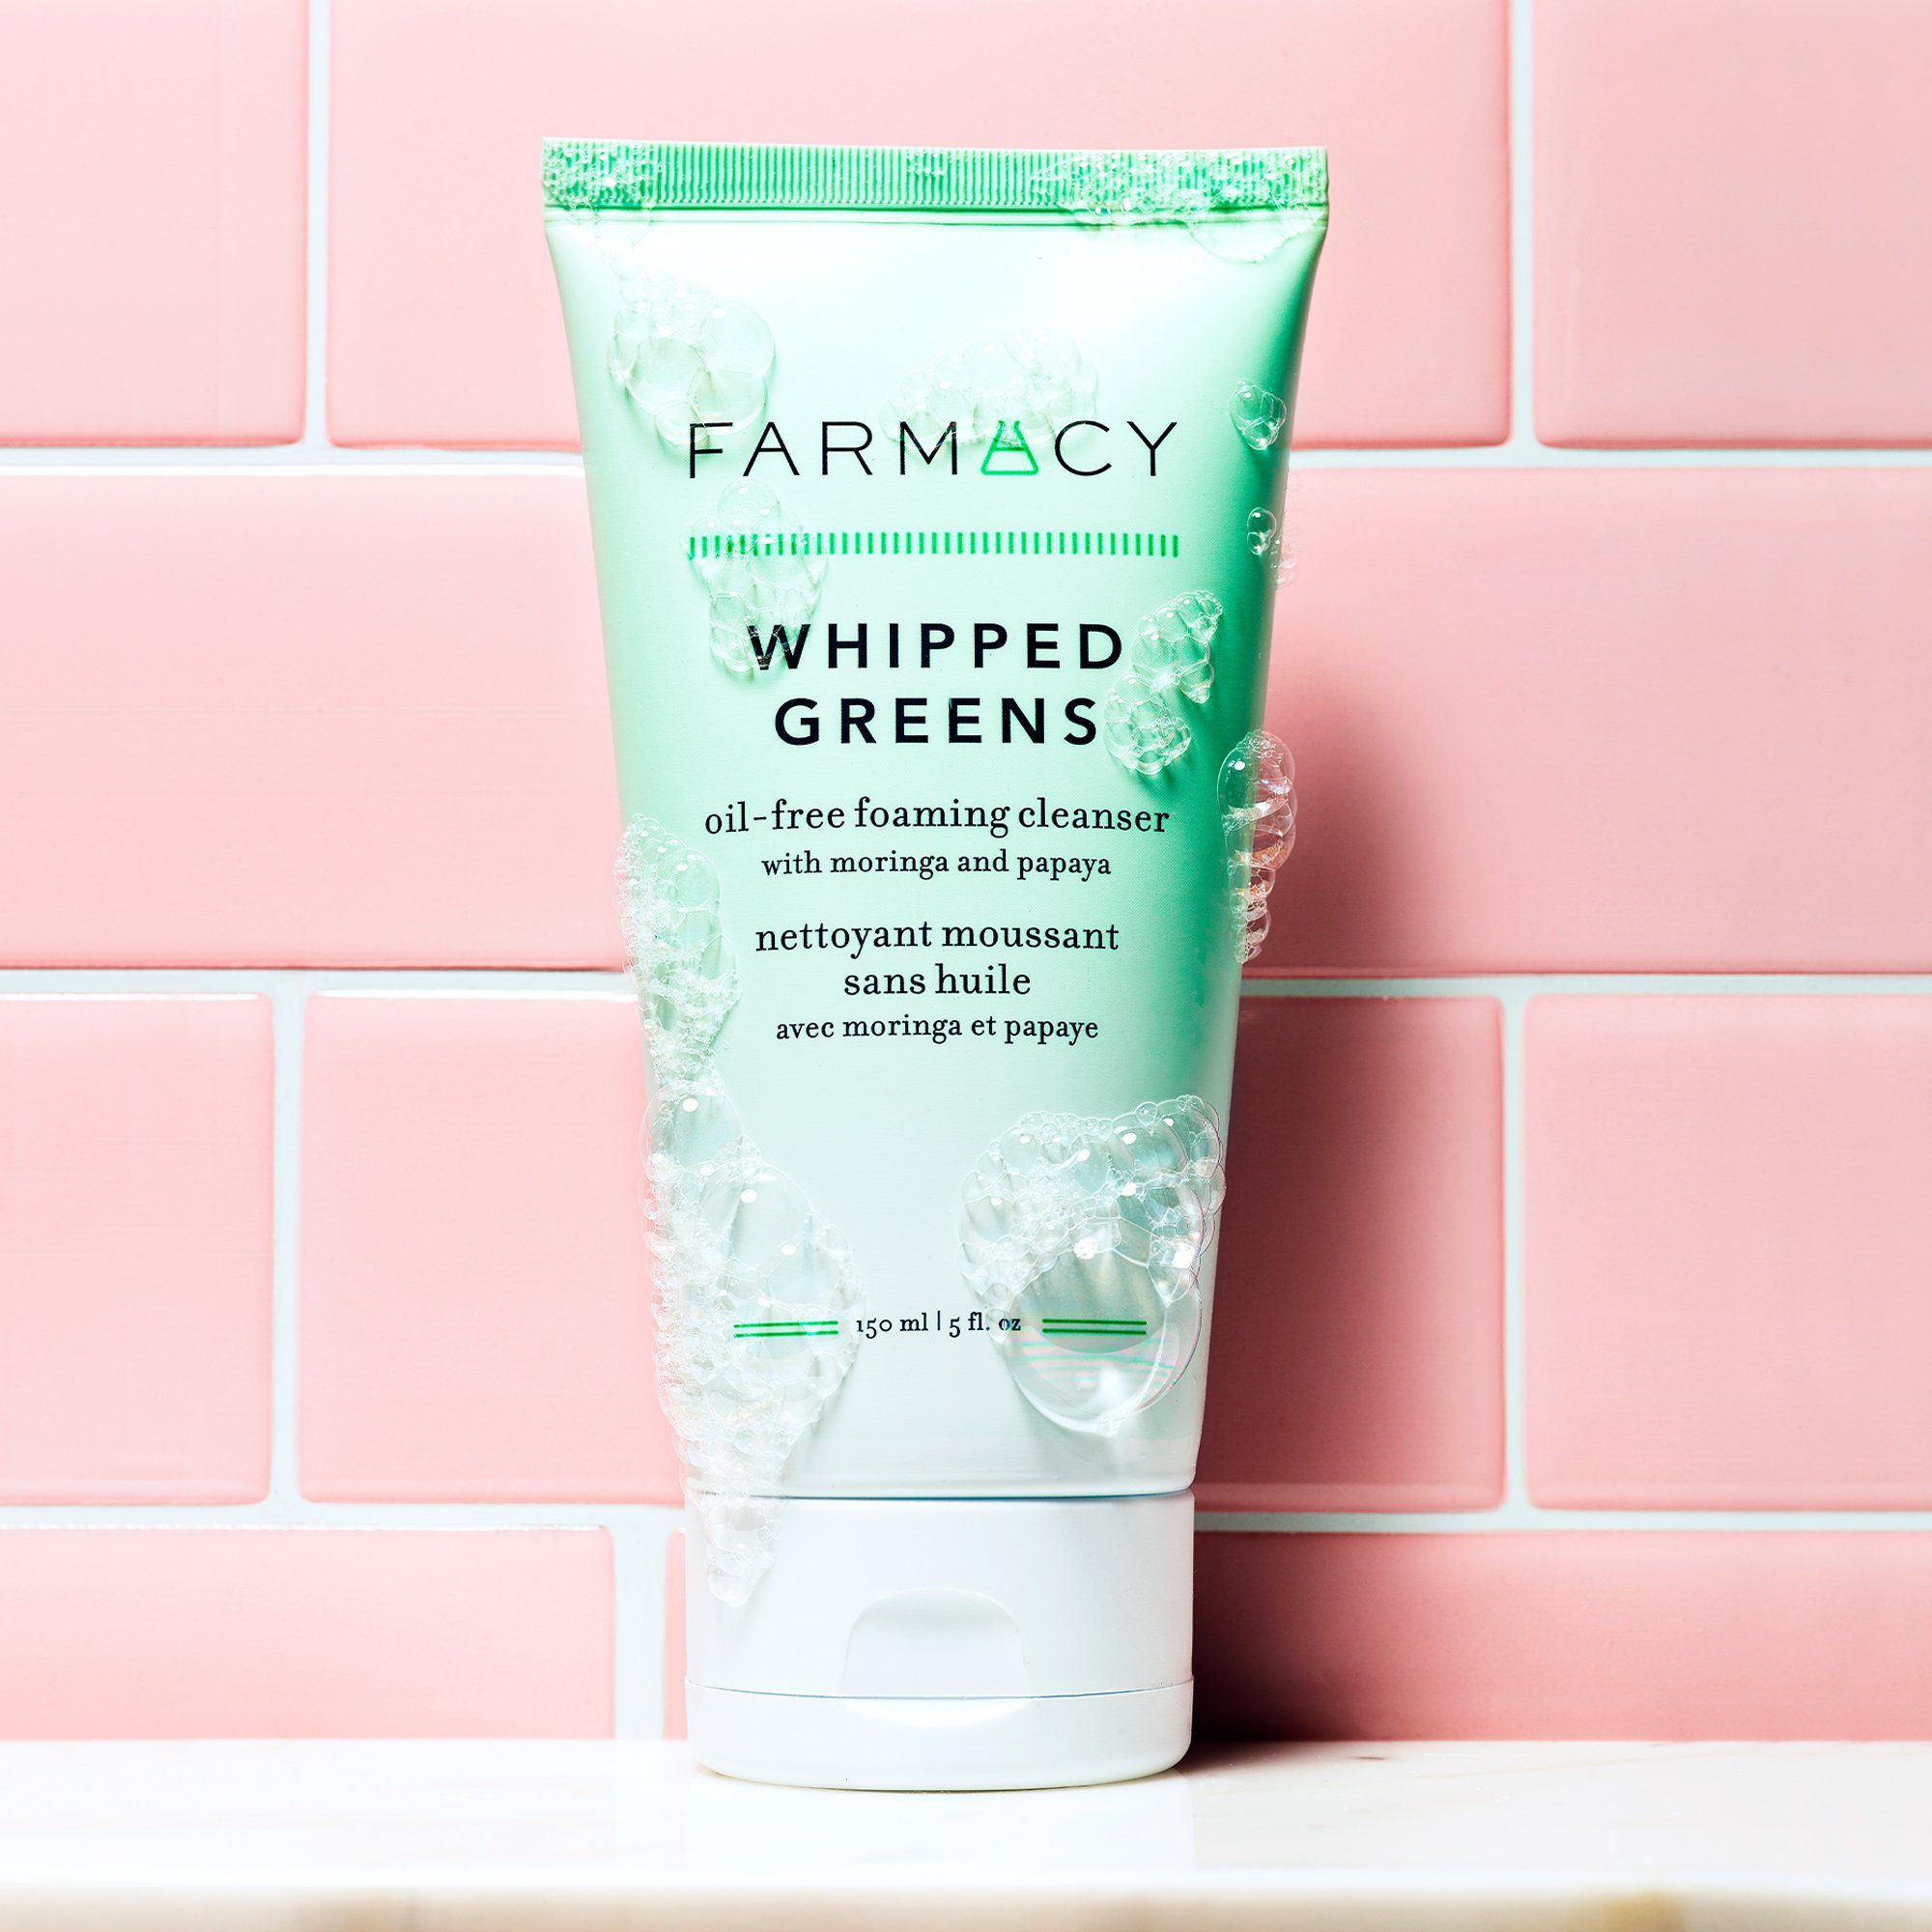 Farmacy Whipped Greens Oil-Free Foaming Cleanser